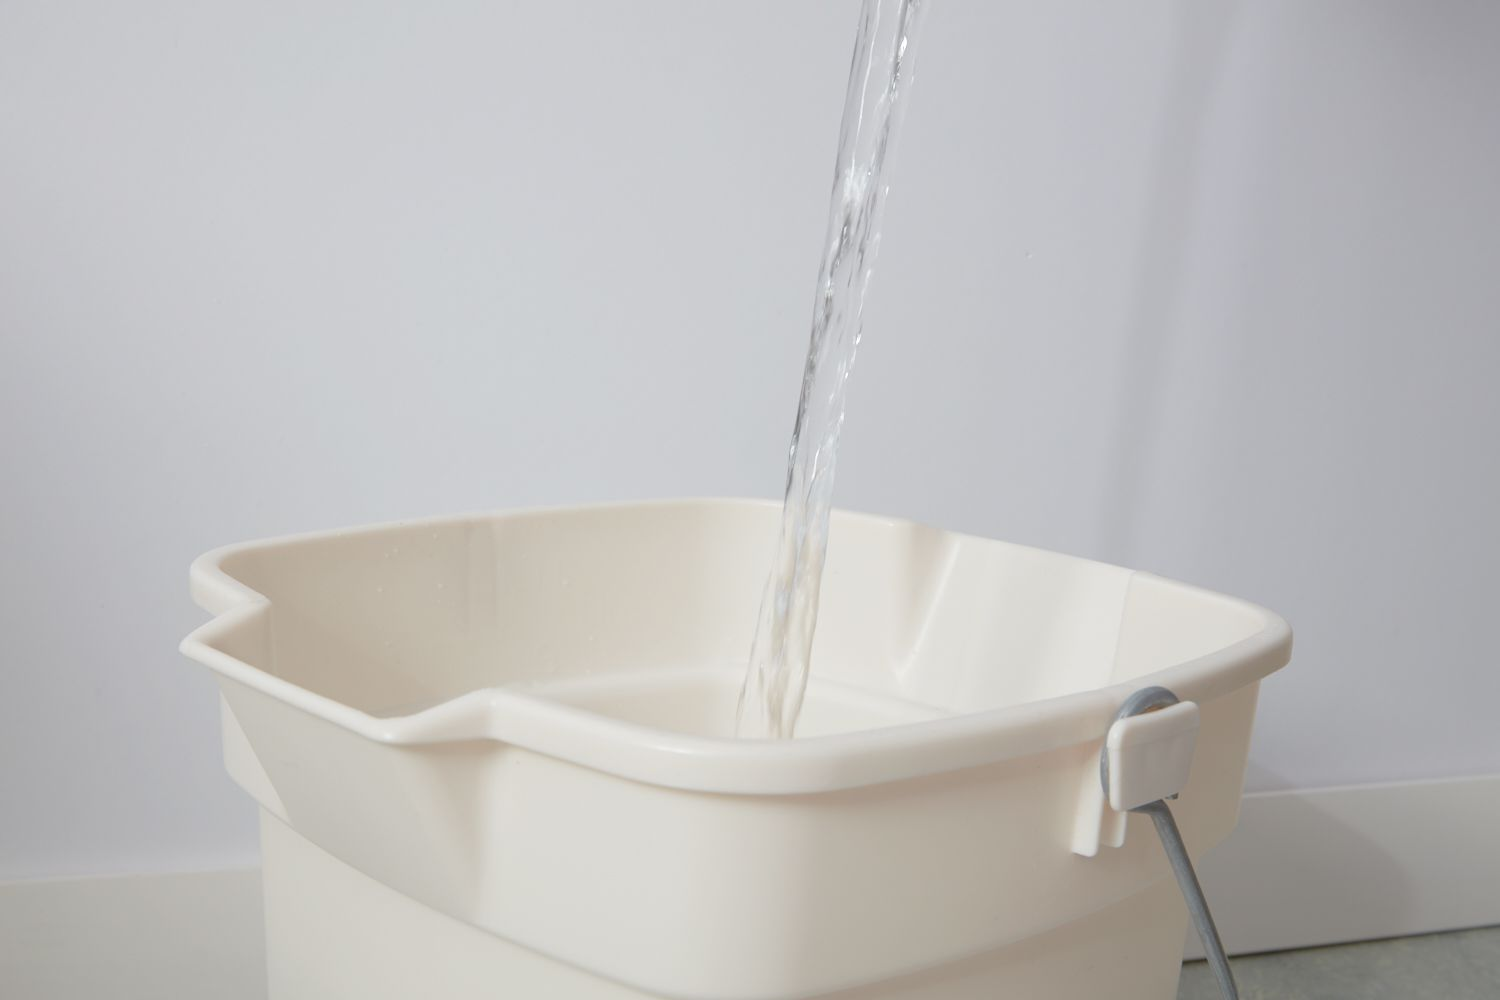 Filling bucket with fresh water to clean floor